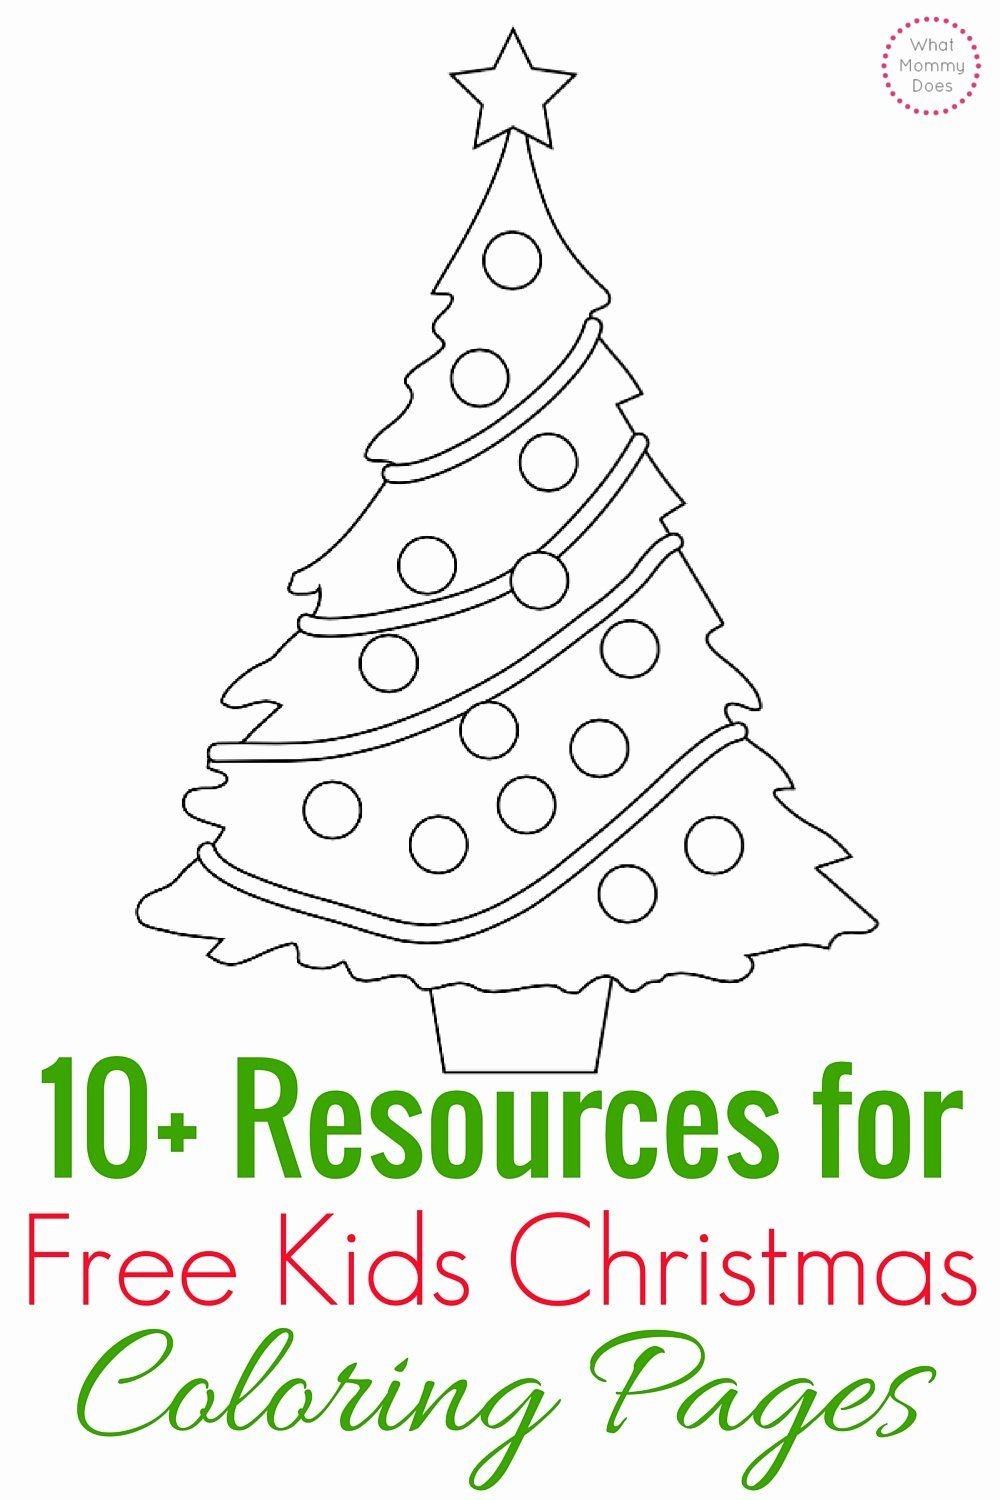 Merry Christmas Tree Coloring Page New Free Kids Christmas Coloring Pages In 2020 Christmas Coloring Pages Kids Christmas Coloring Pages Merry Christmas Coloring Pages